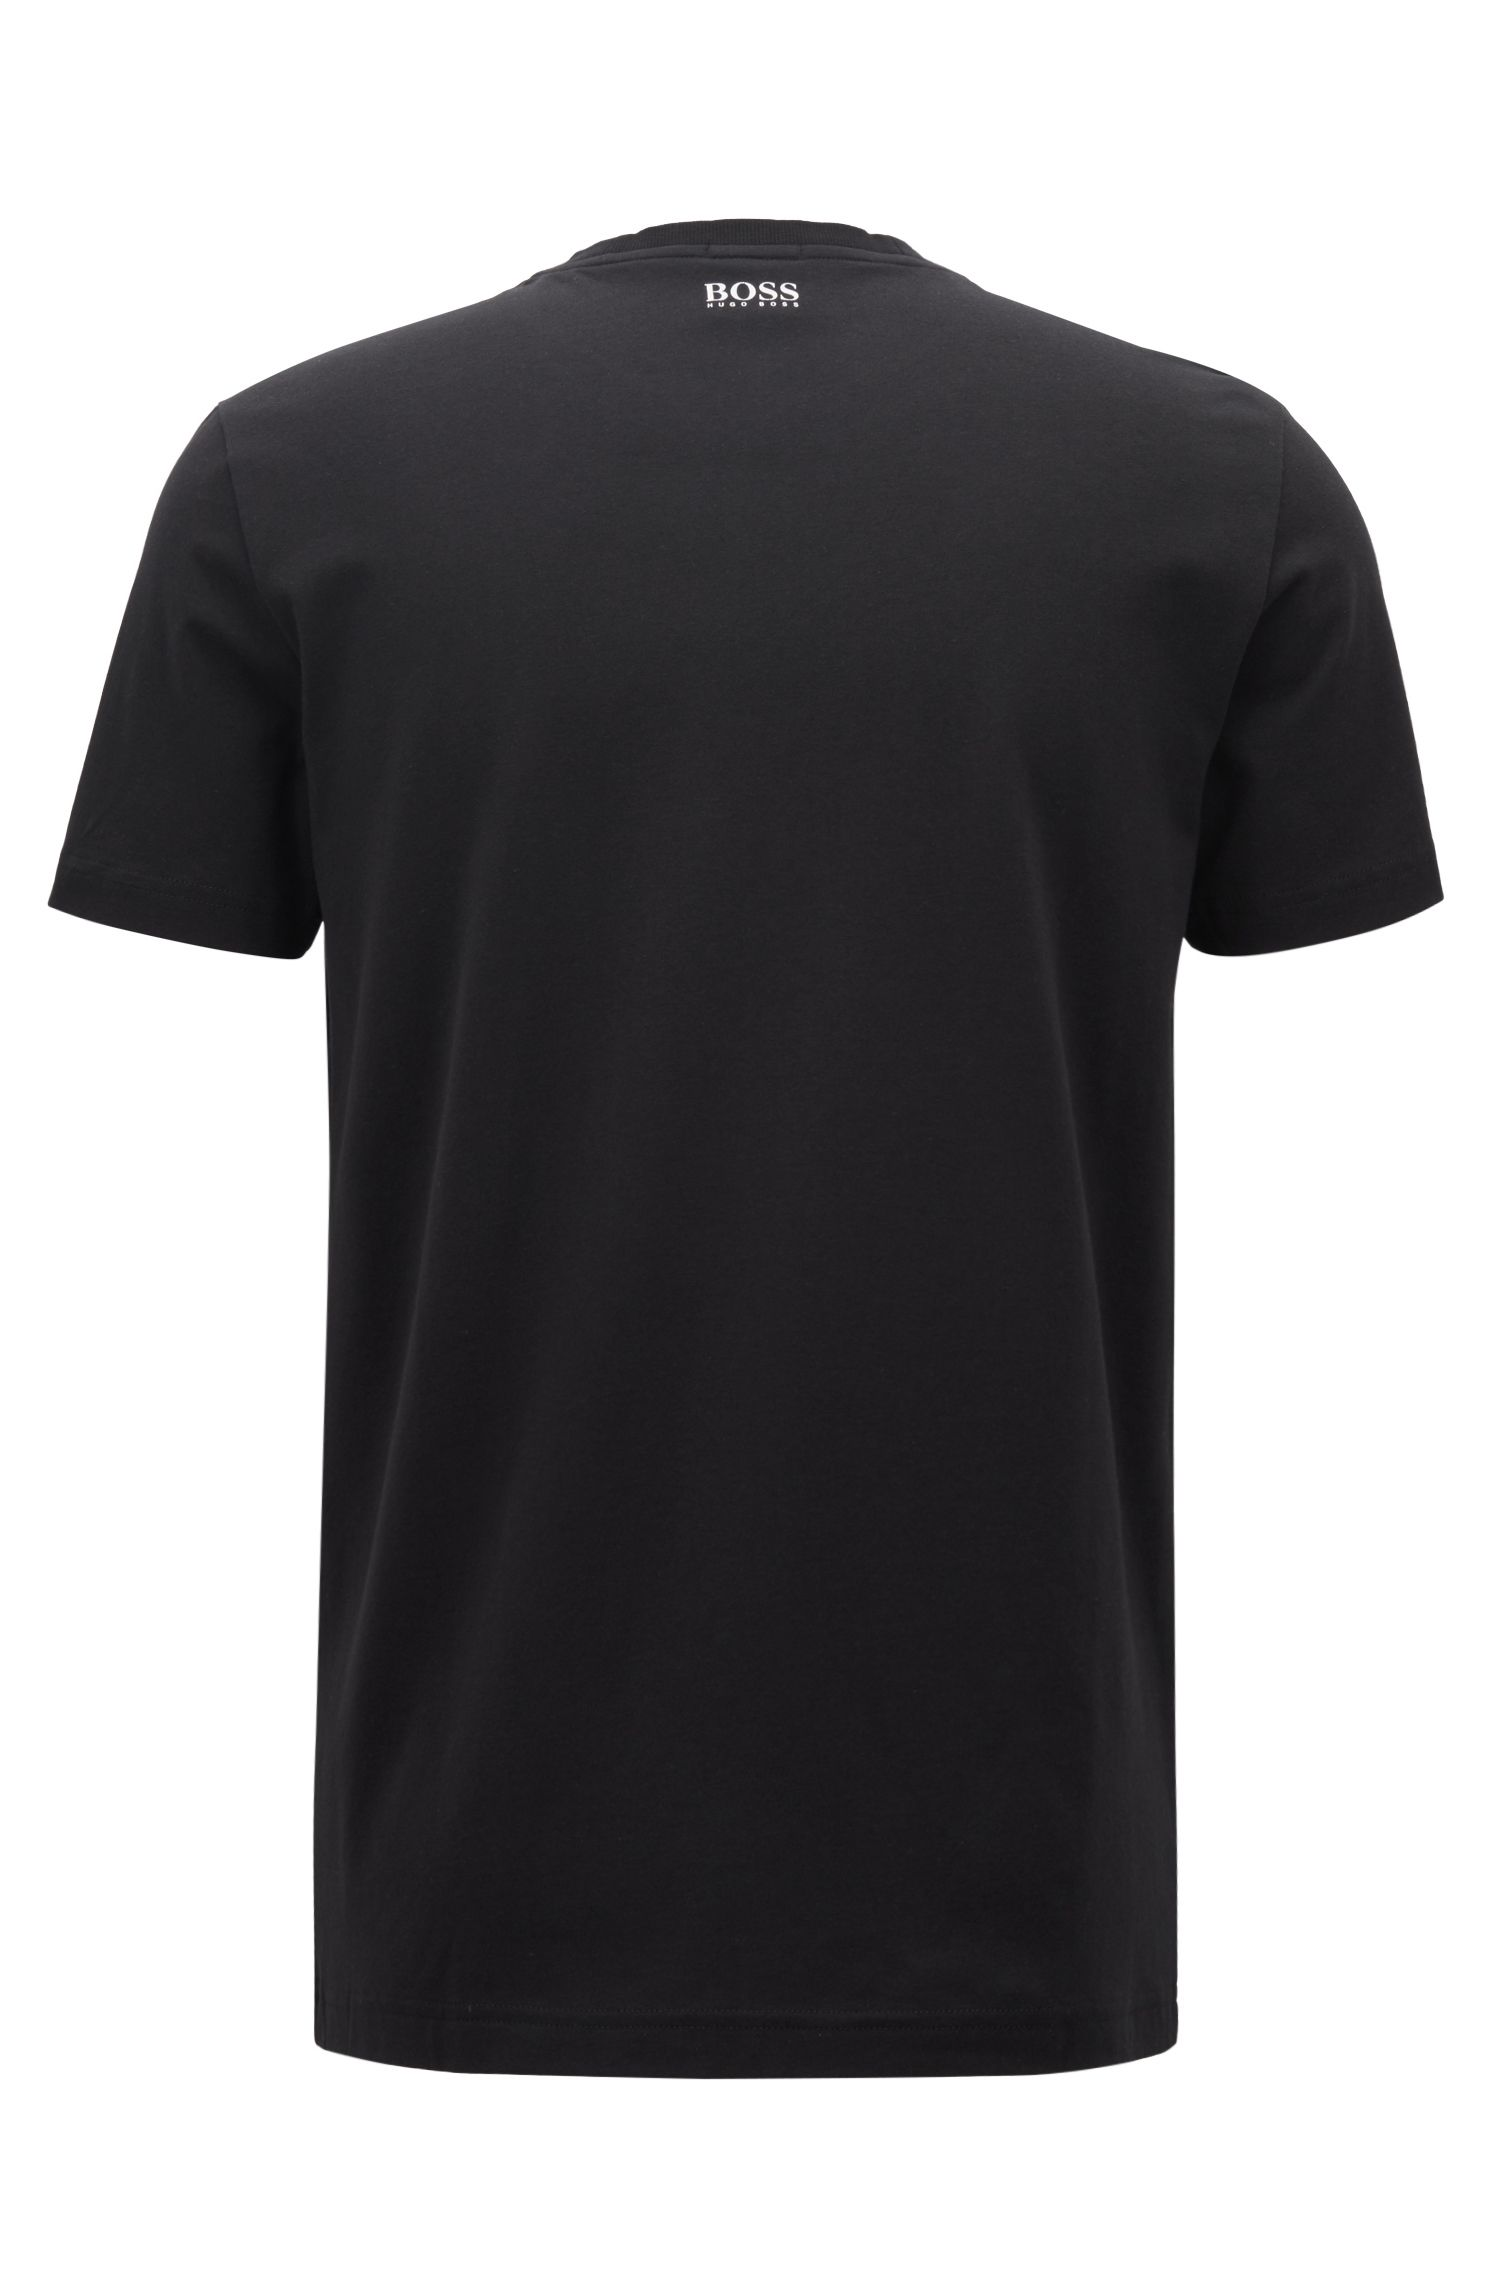 Logo T-shirt in stretch cotton with seasonal photographic print, Black